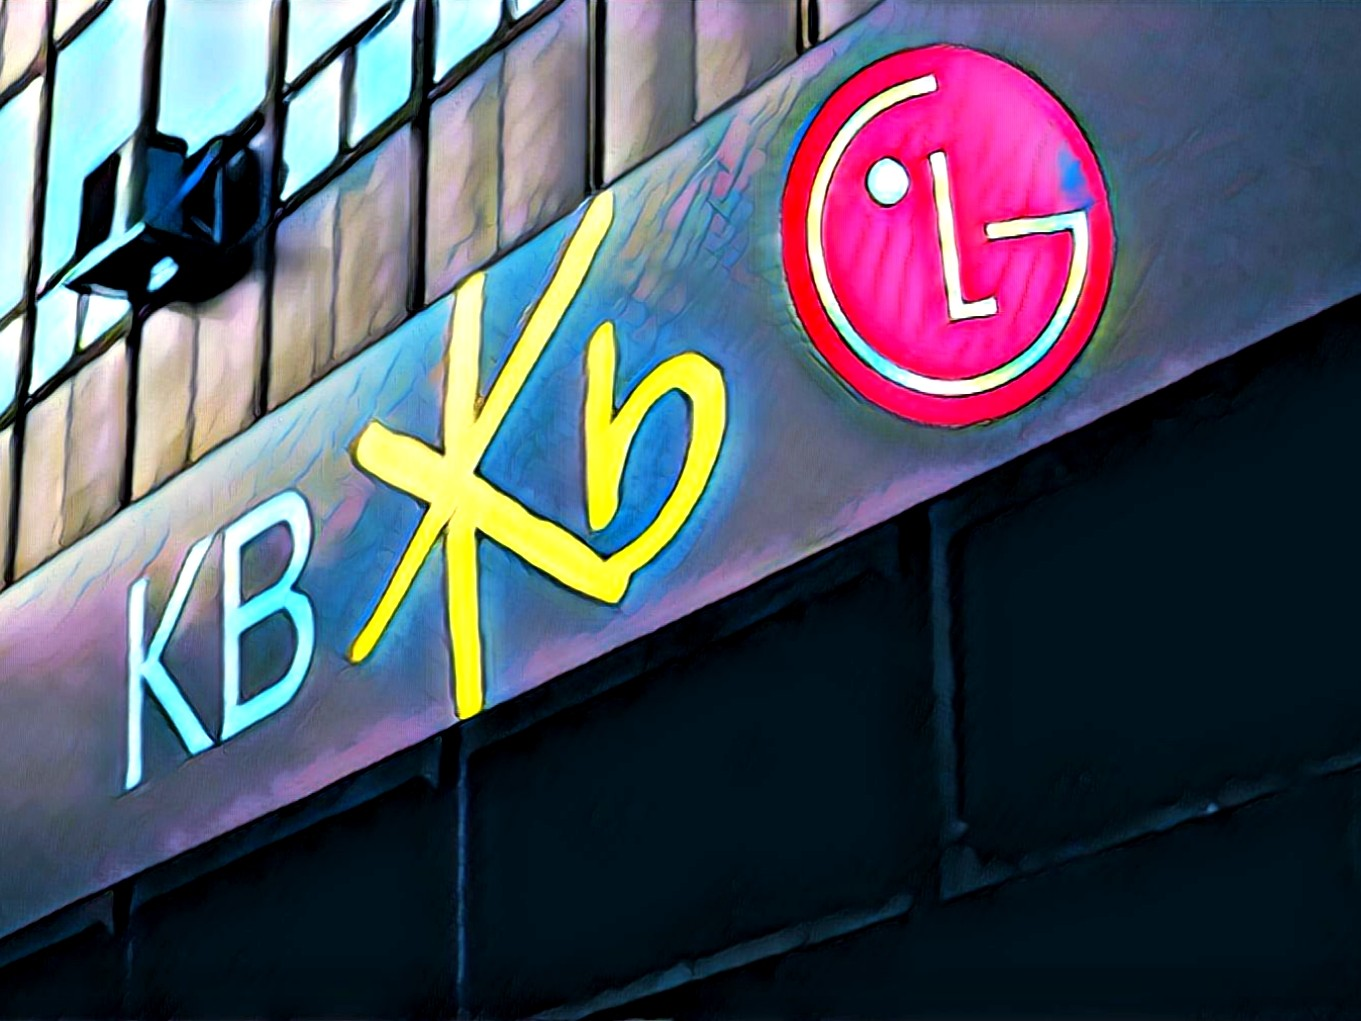 KB Financial Group LG CNS EEA Ethereum